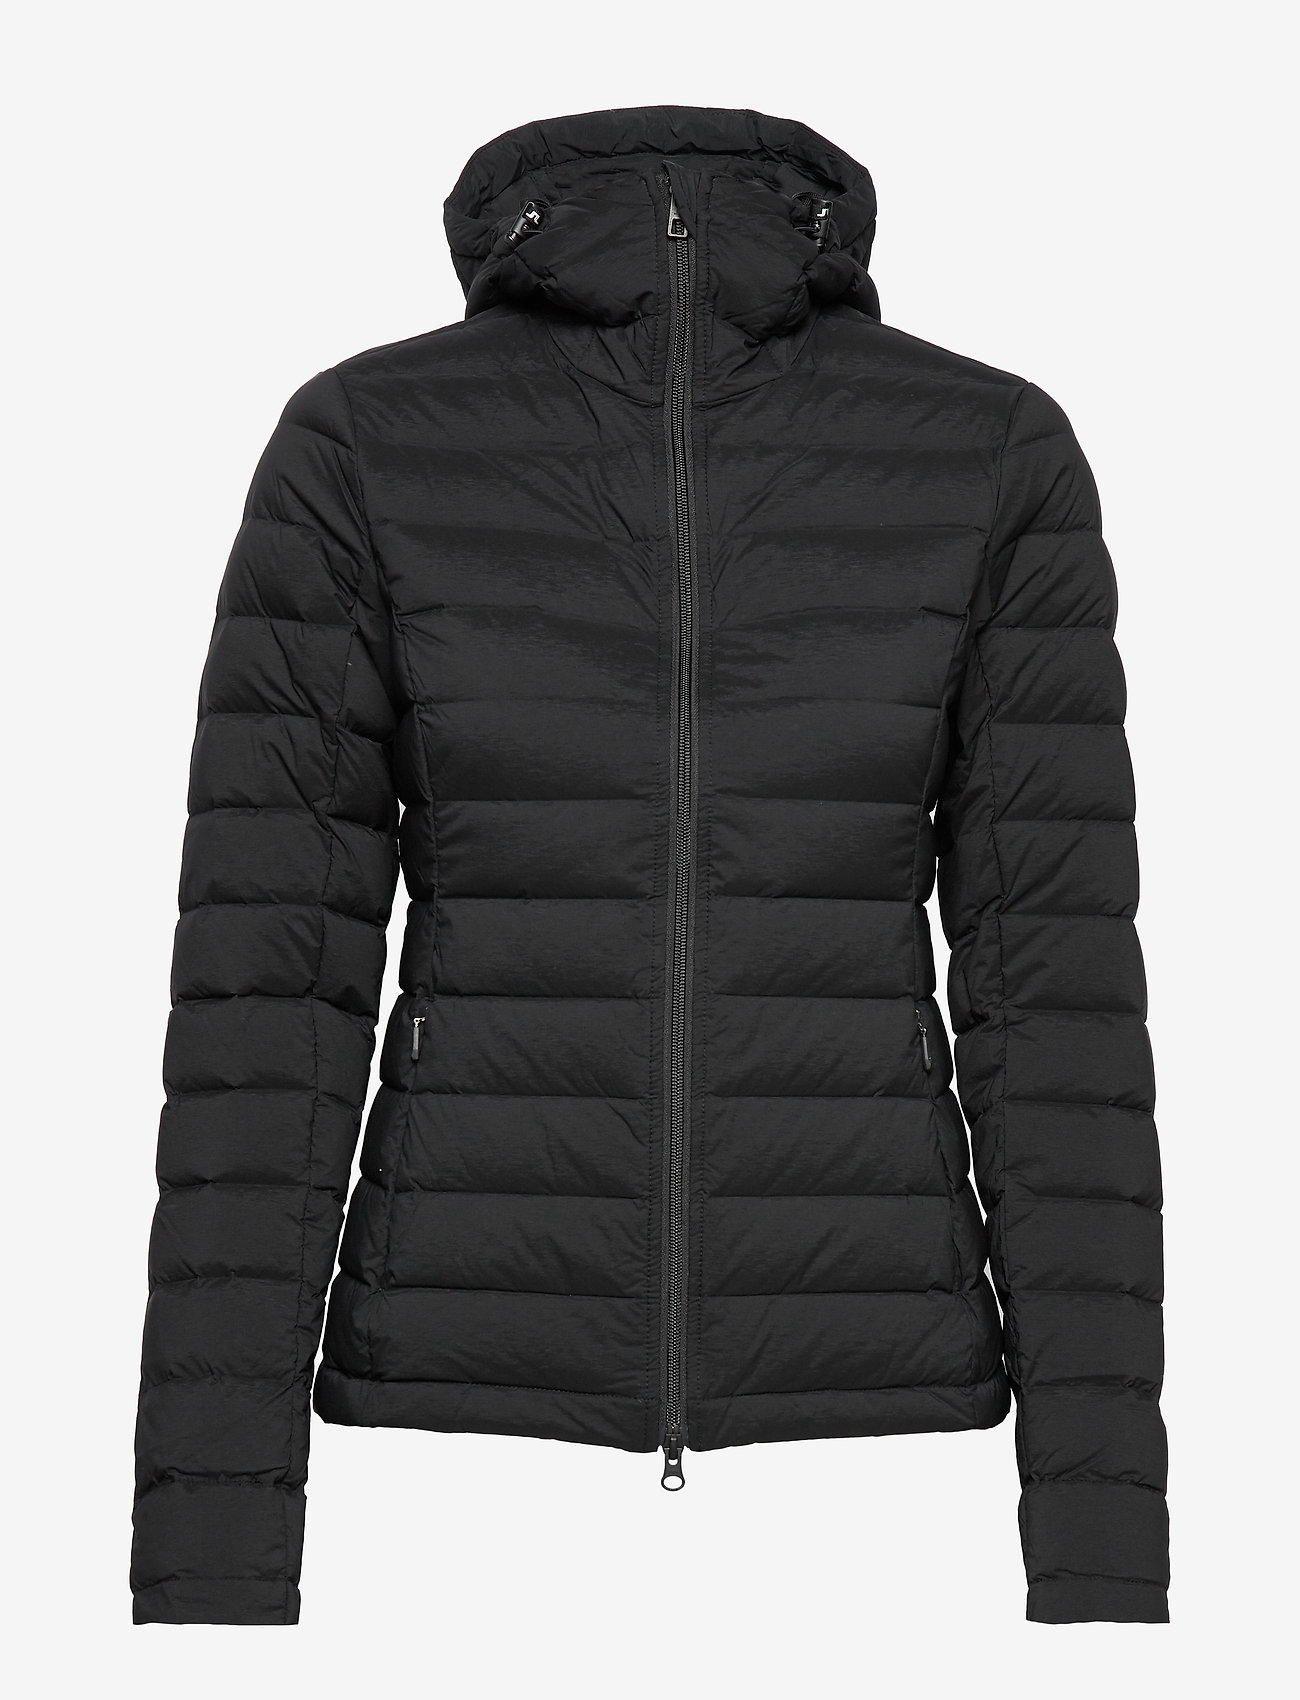 W Ease Hooded Liner-jl Down (Black) - J. Lindeberg Ski aqNcOJ